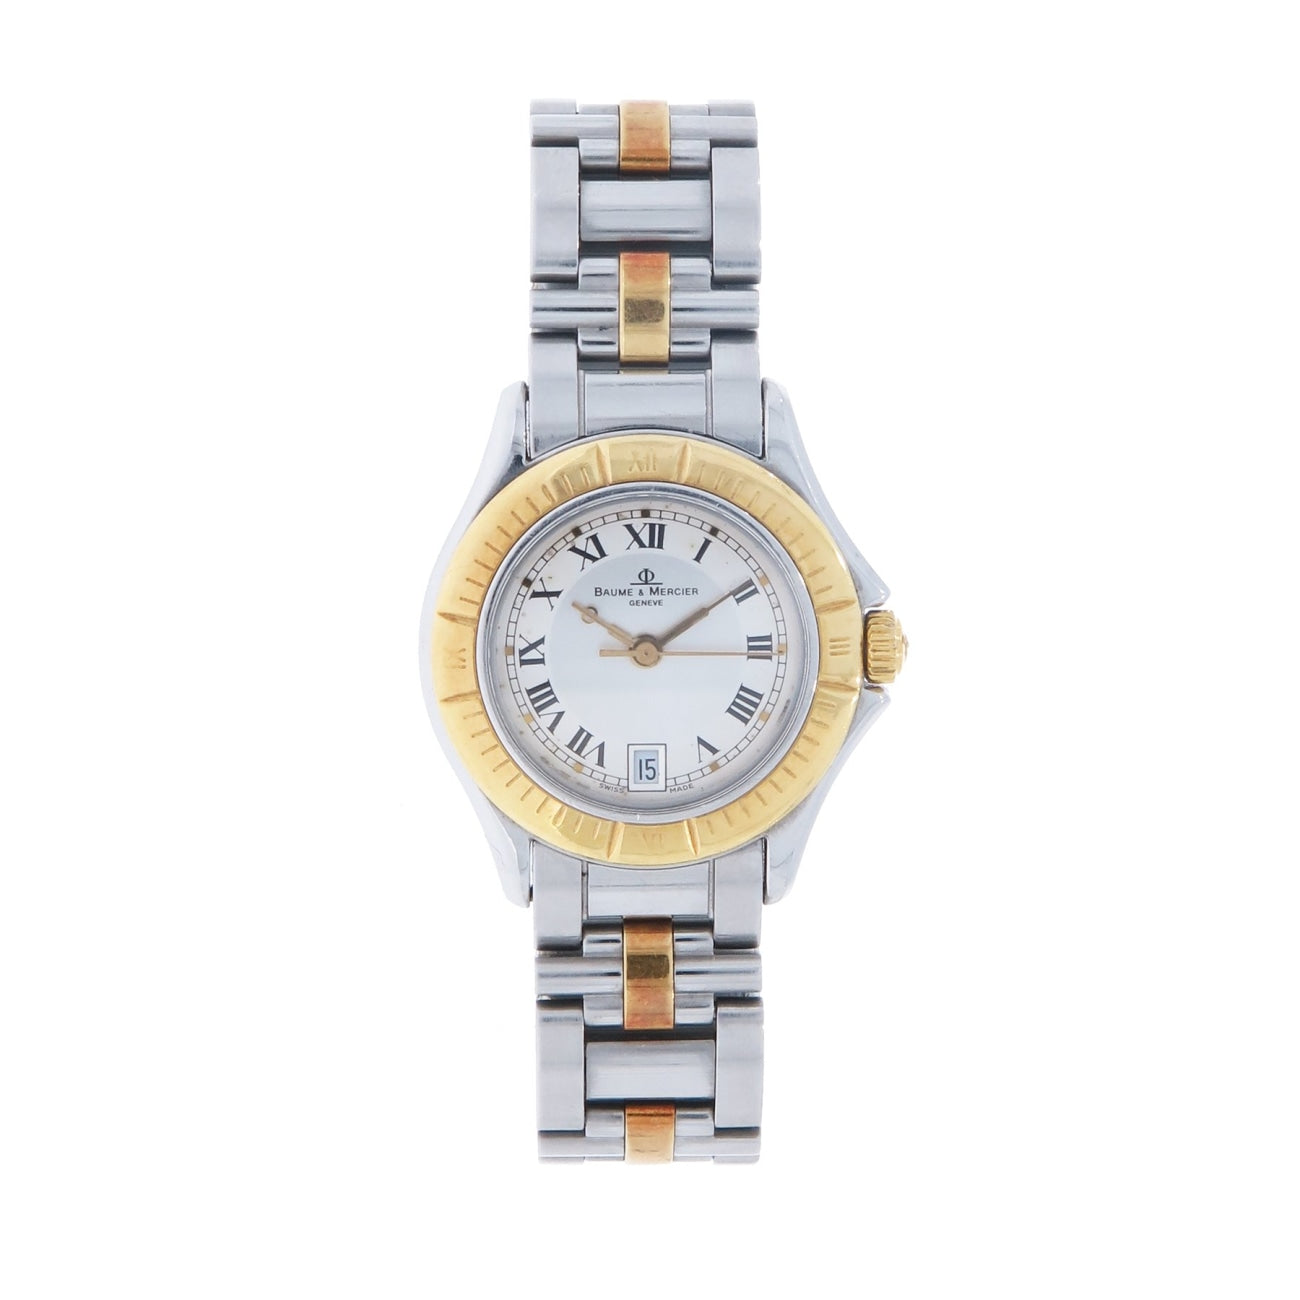 Pre-Owned Baume & Mercier Pre-Owned Watches - Malibu | Manfredi Jewels